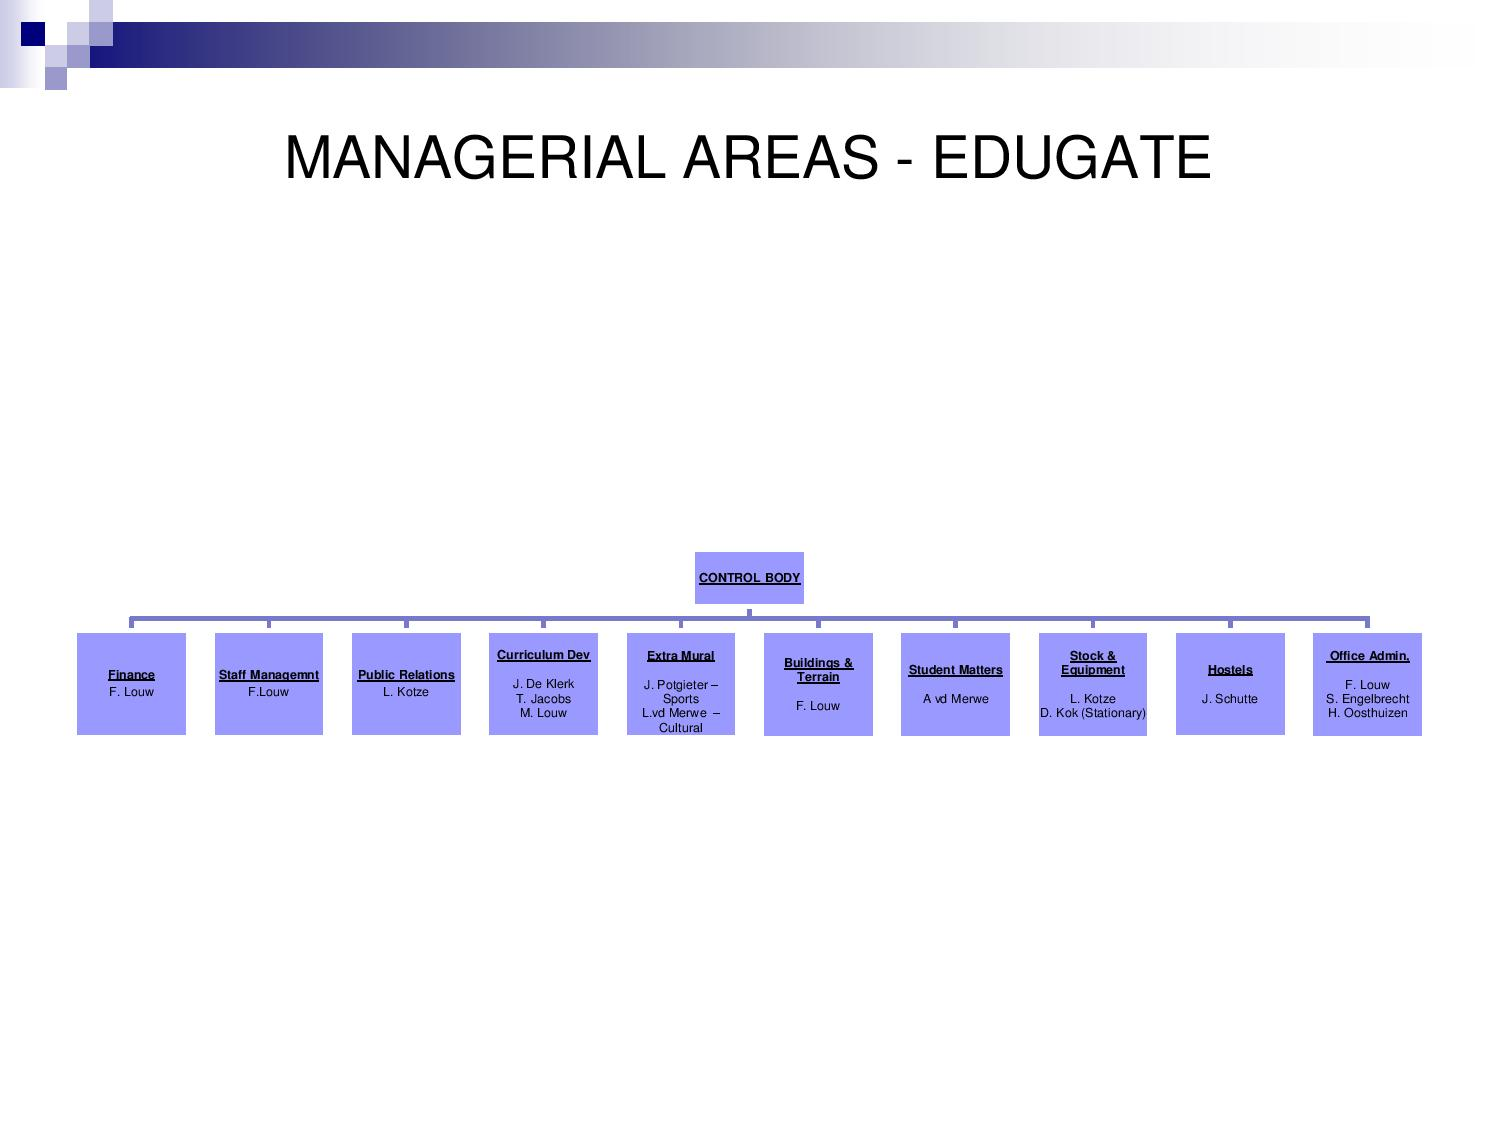 Managerial Areas